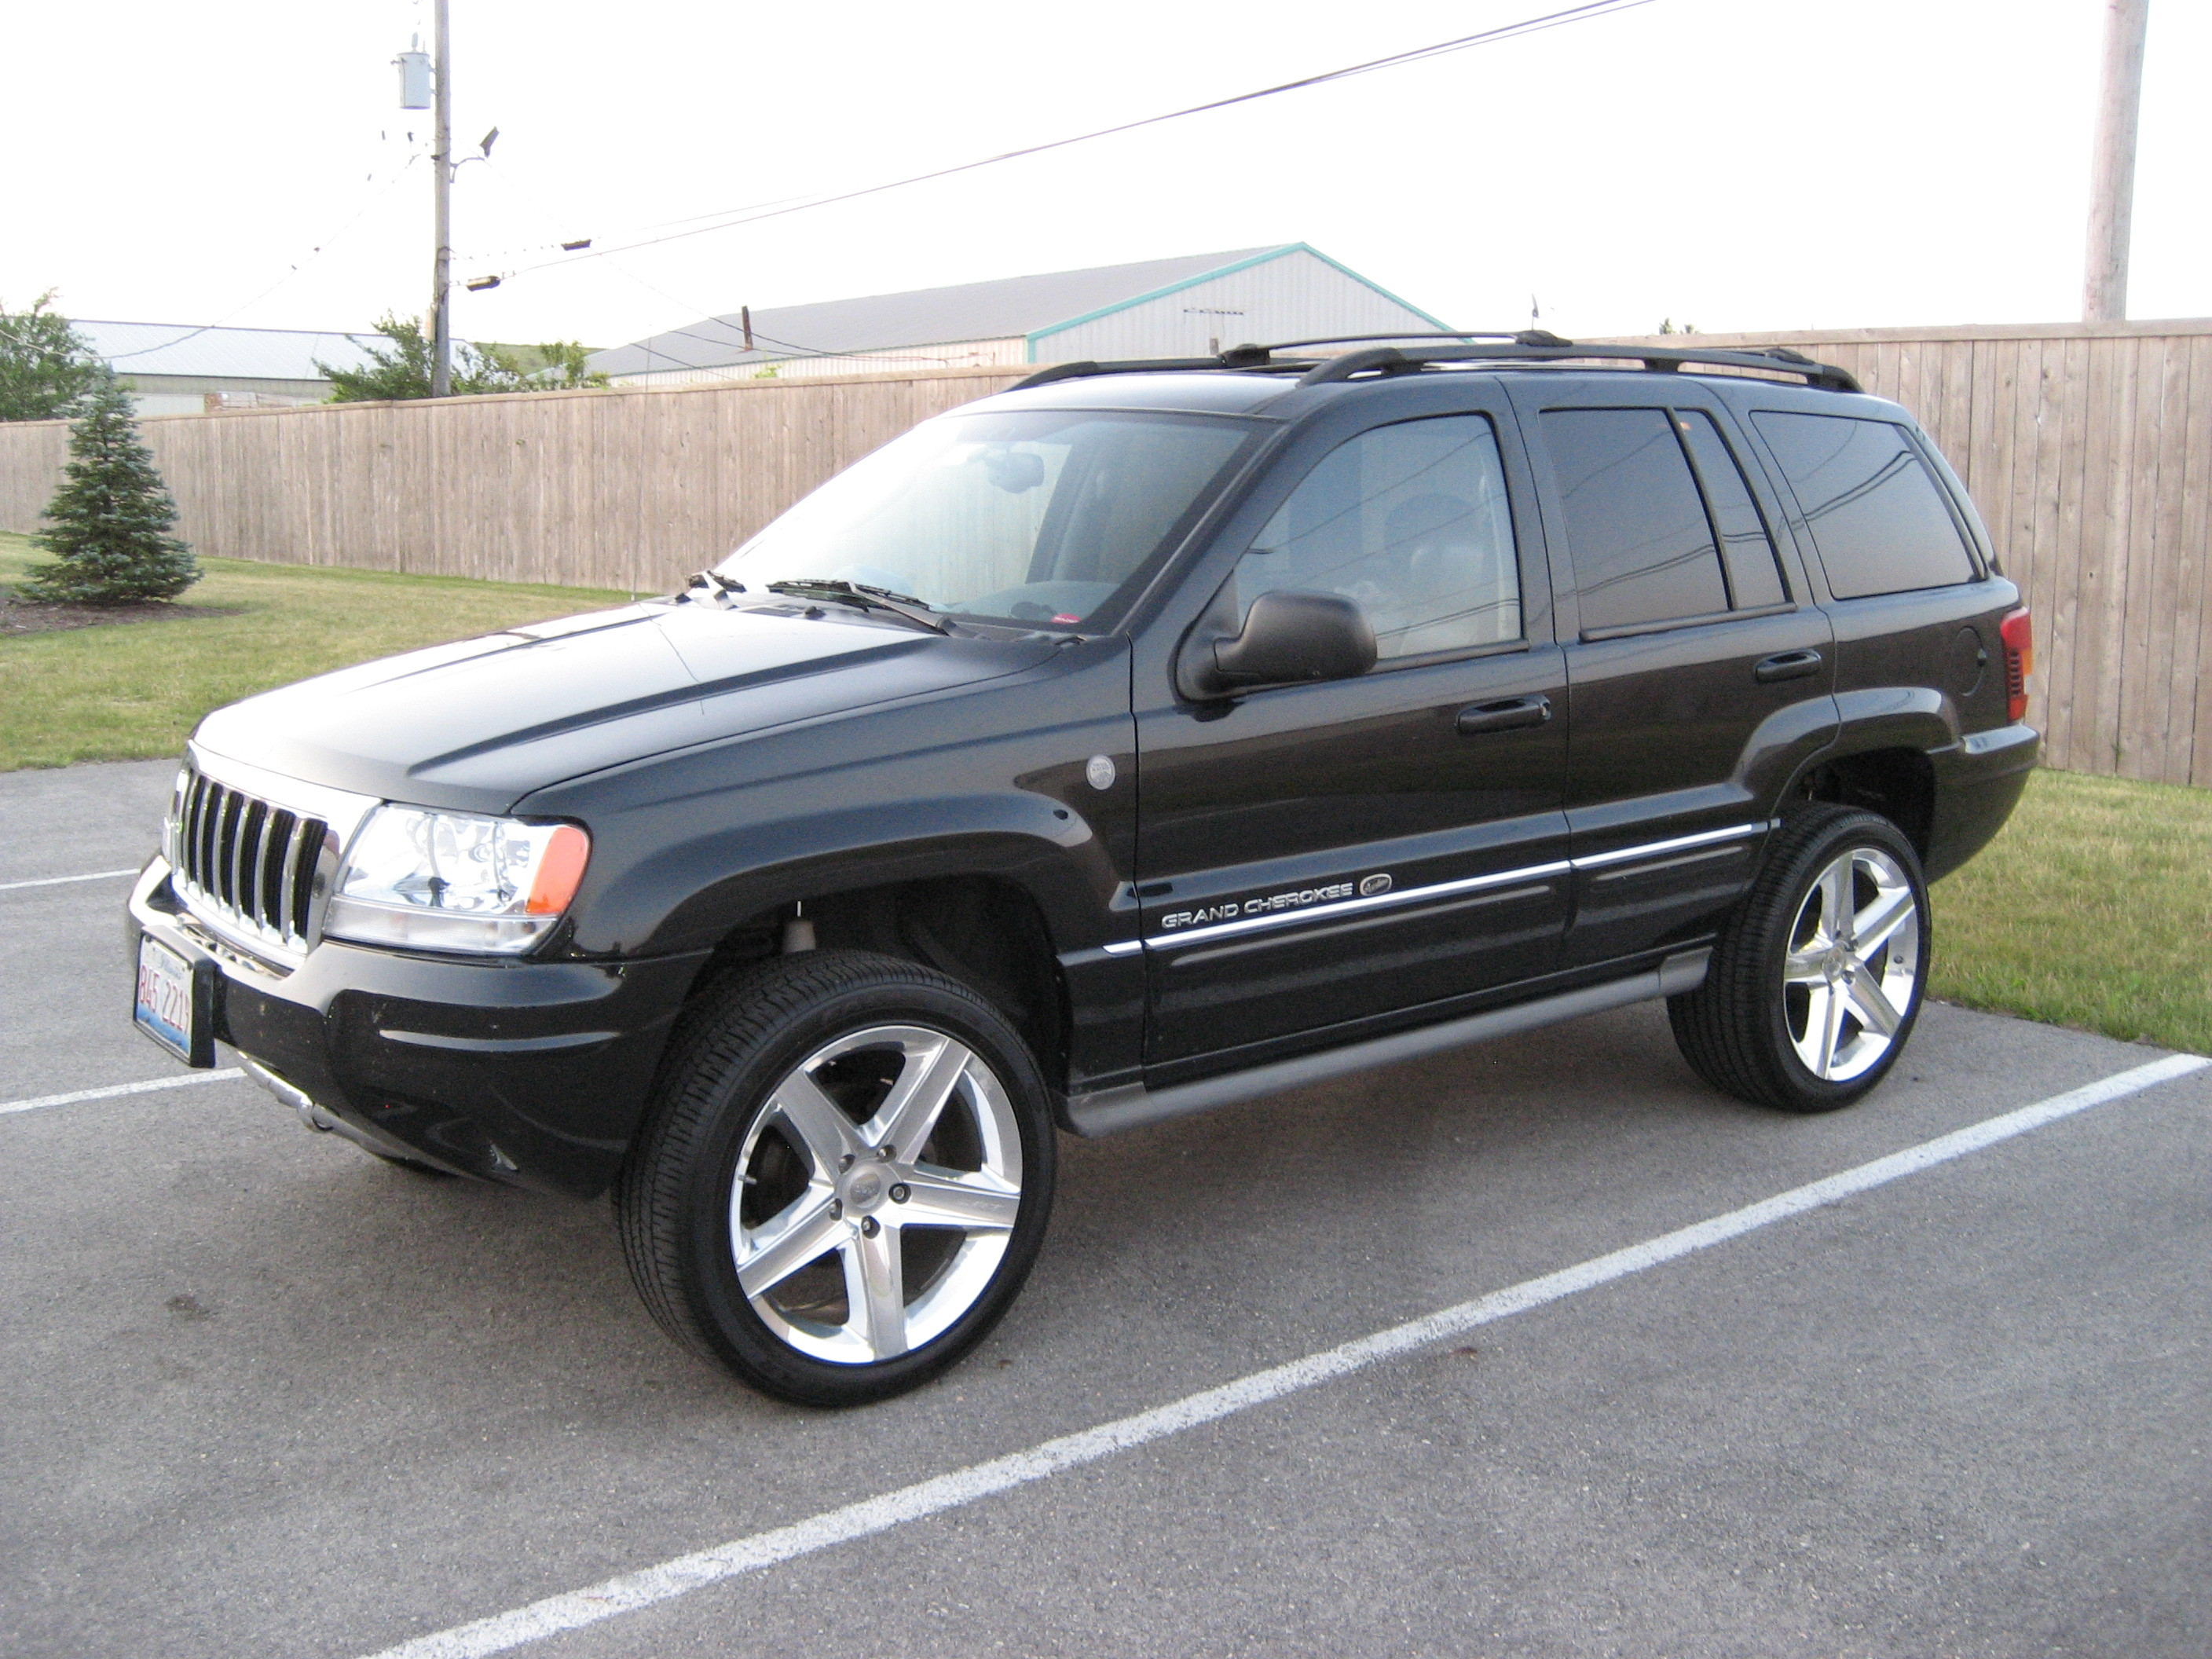 charles81076 2004 jeep grand cherokee specs photos modification info at cardomain. Black Bedroom Furniture Sets. Home Design Ideas